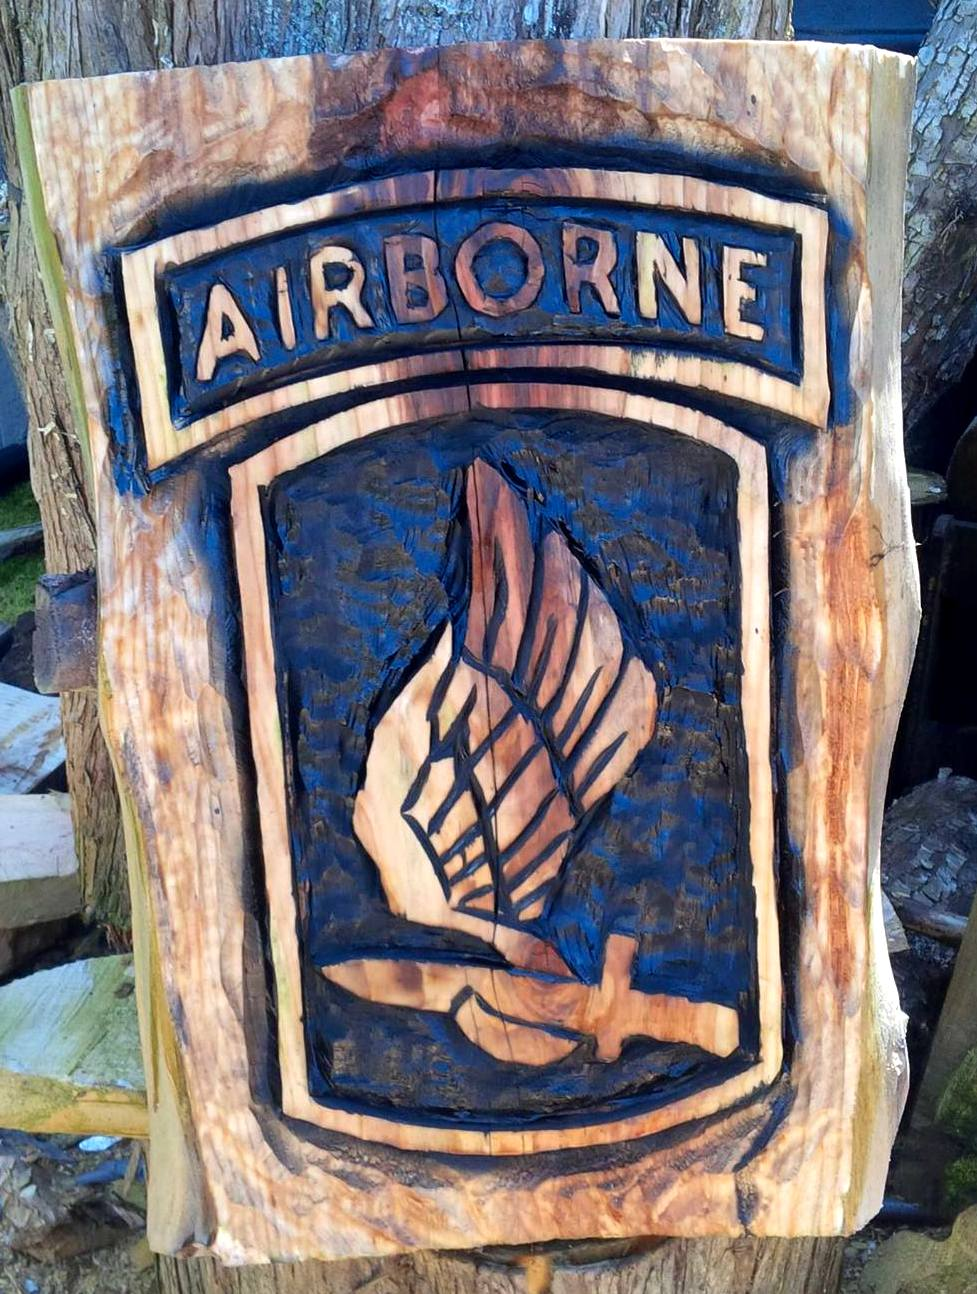 2014-05-13-Airborne-Chainsaw-Carved-Sign-1.jpg